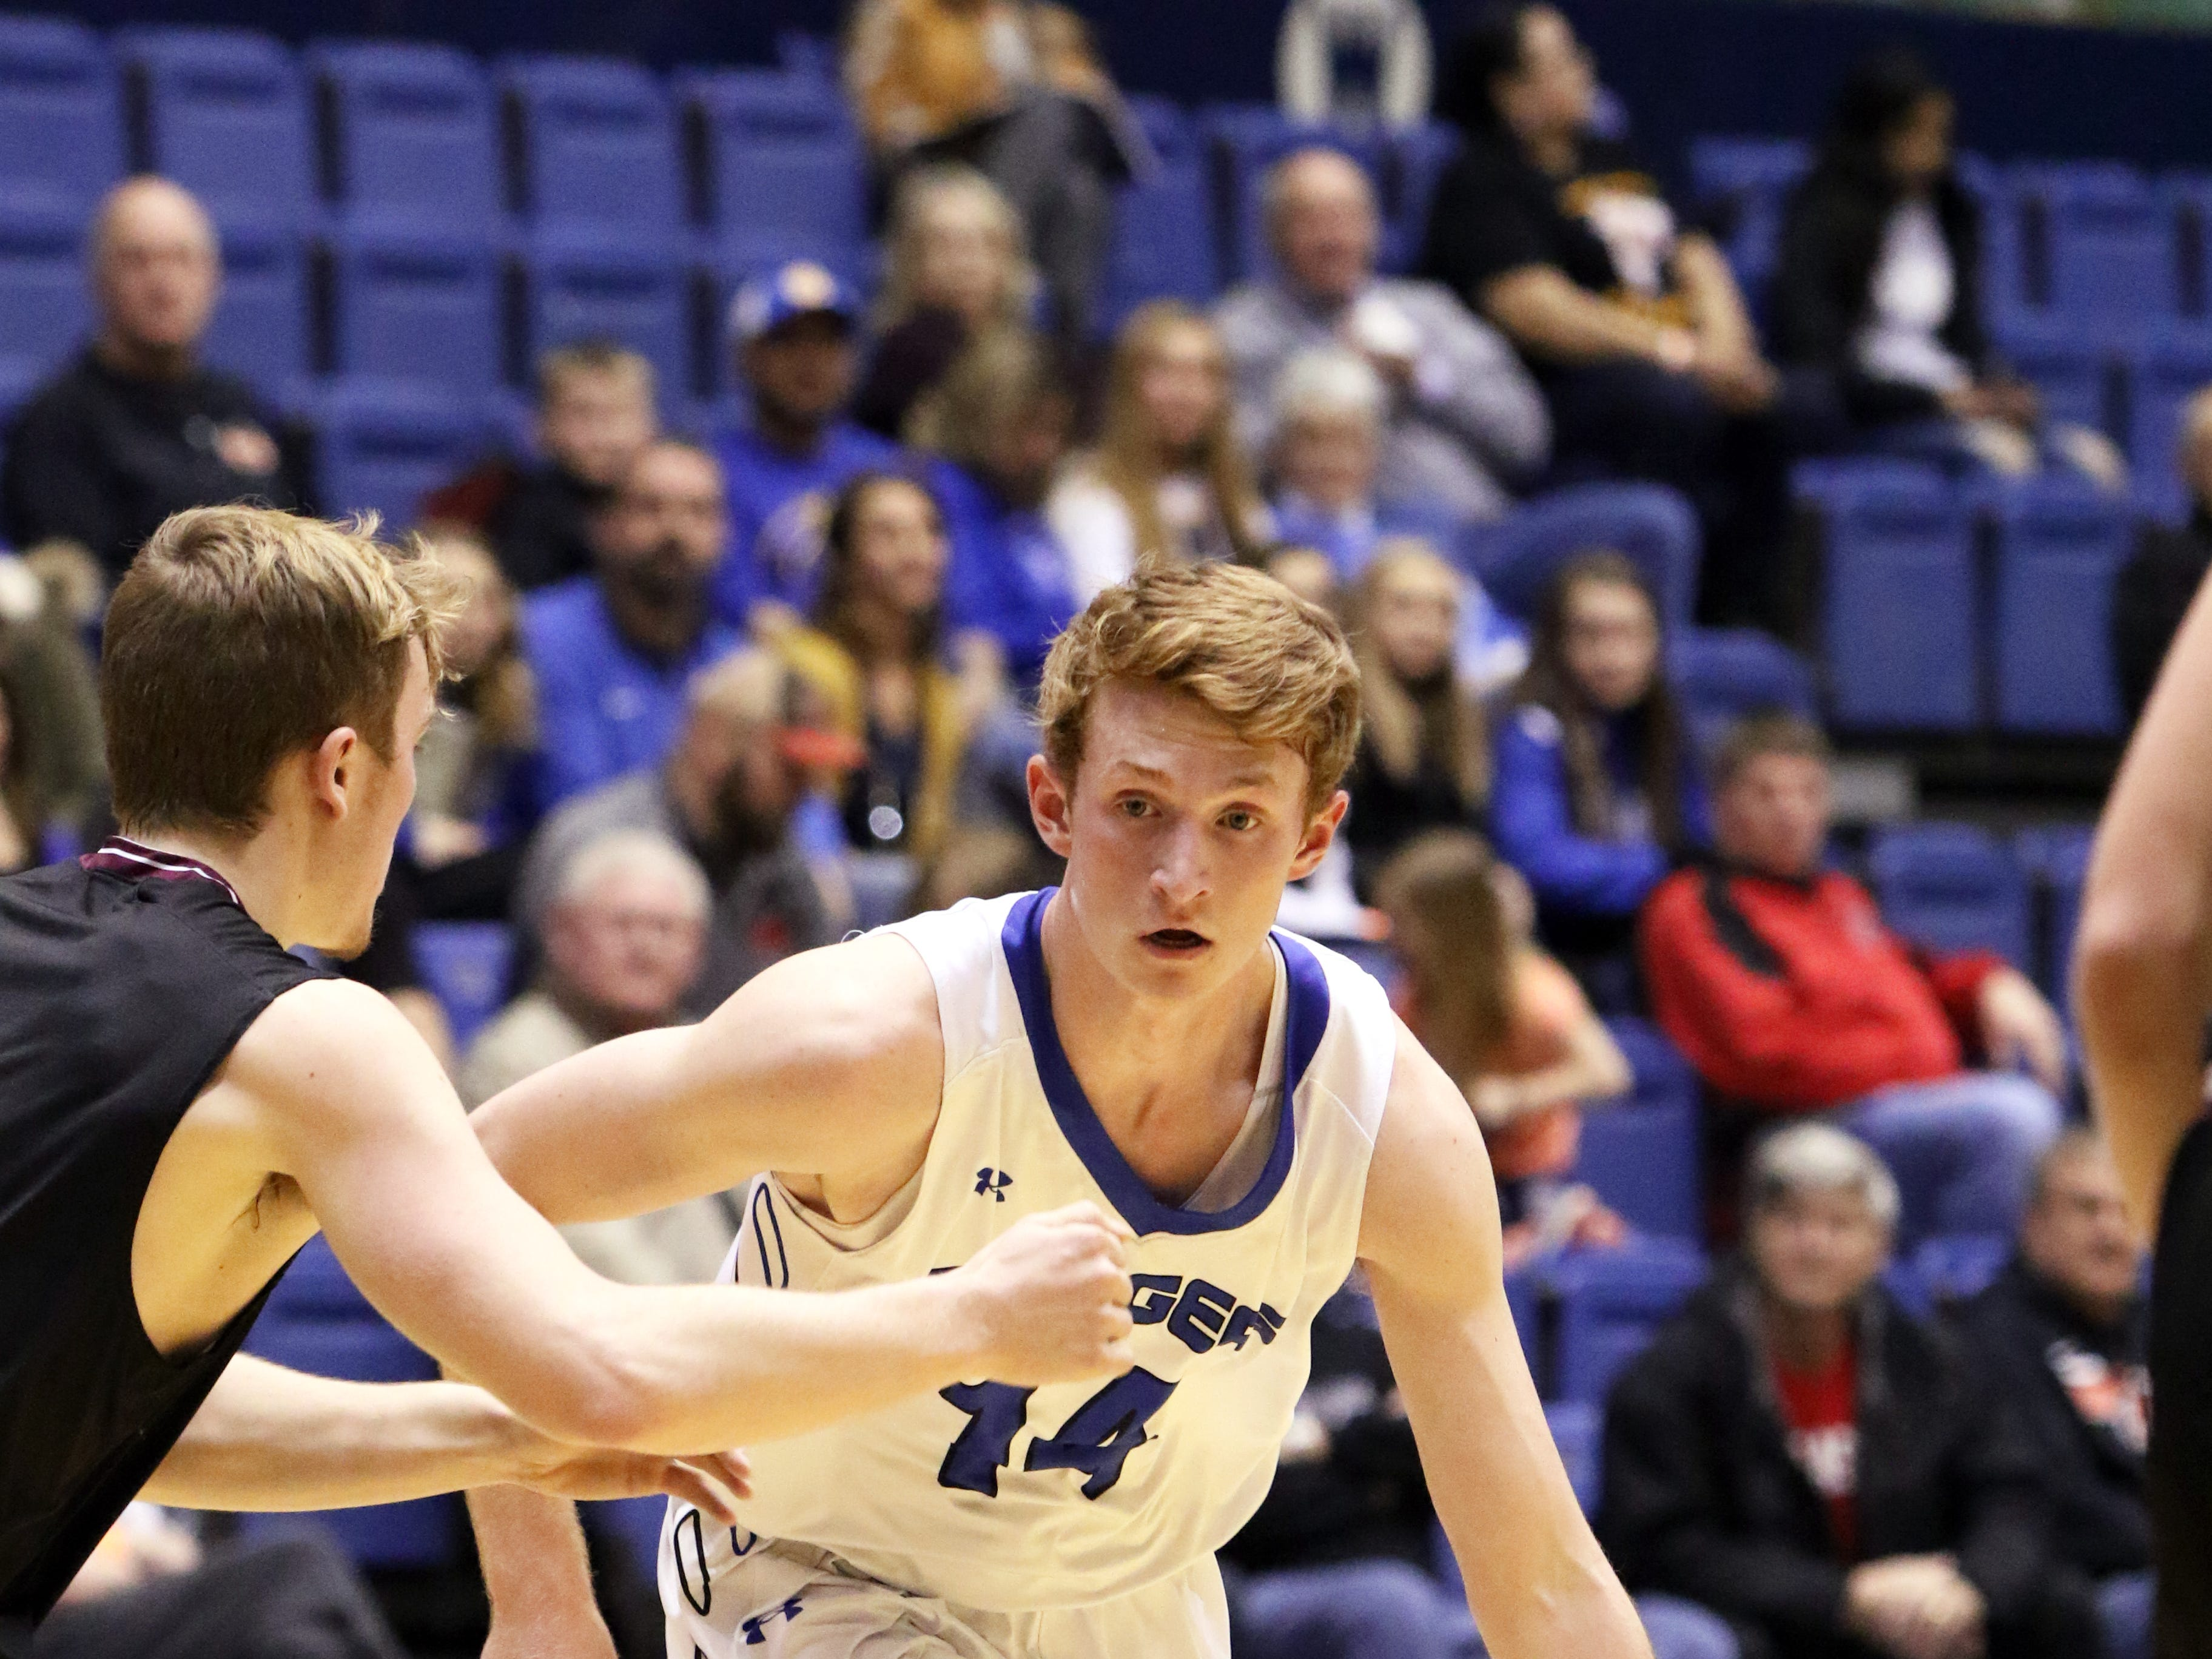 Gavin Schipper of Sioux Falls Christian looks to get around Nic Comes of Madison during Thursday's game at the Arena in Sioux Falls.